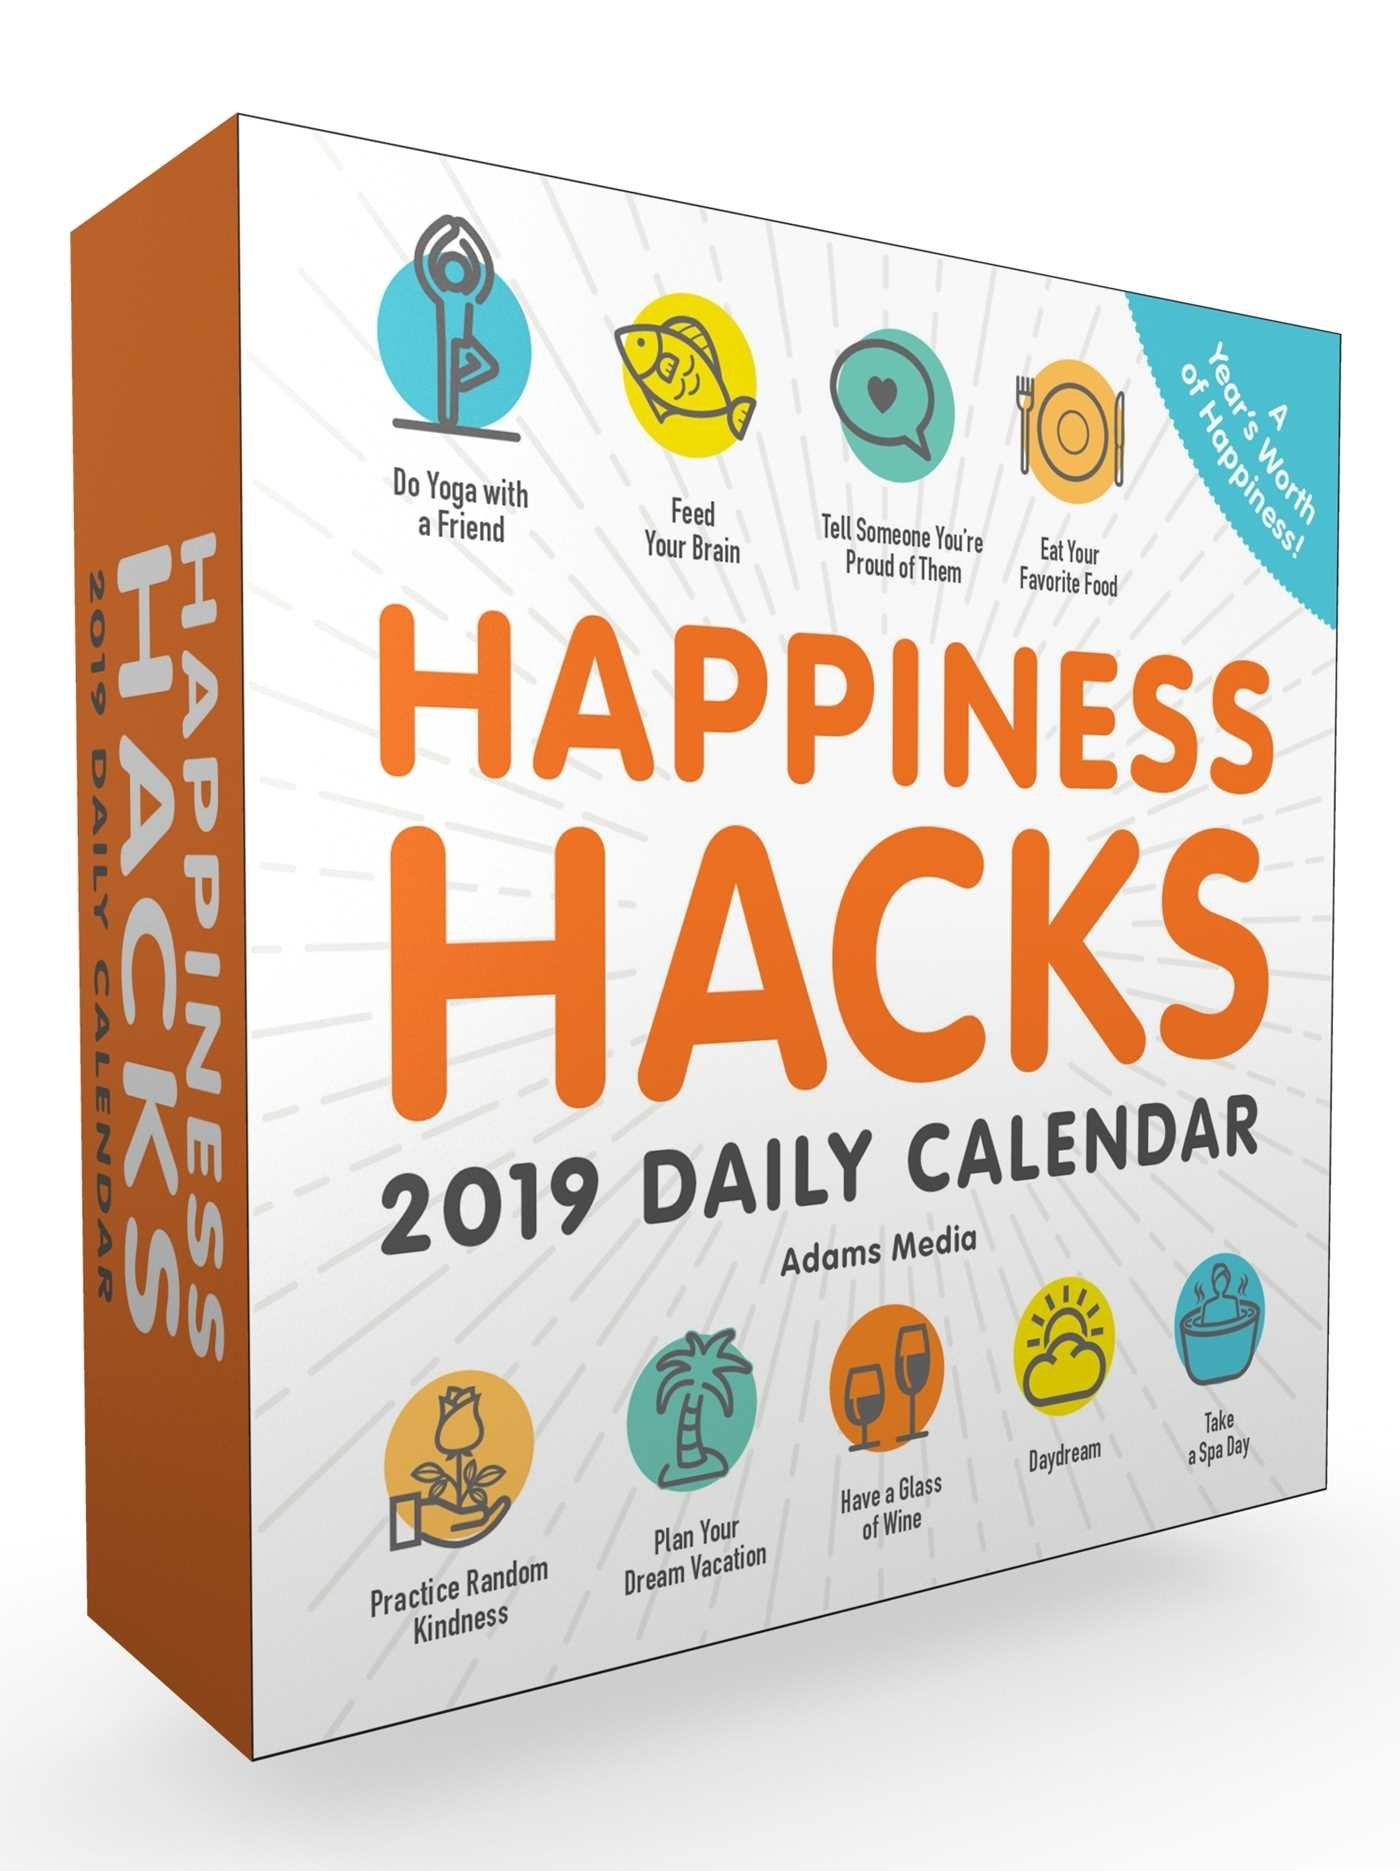 Happiness Hacks 2019 Daily Calendar - Book Summary & Video Page A Day Calendar 2019